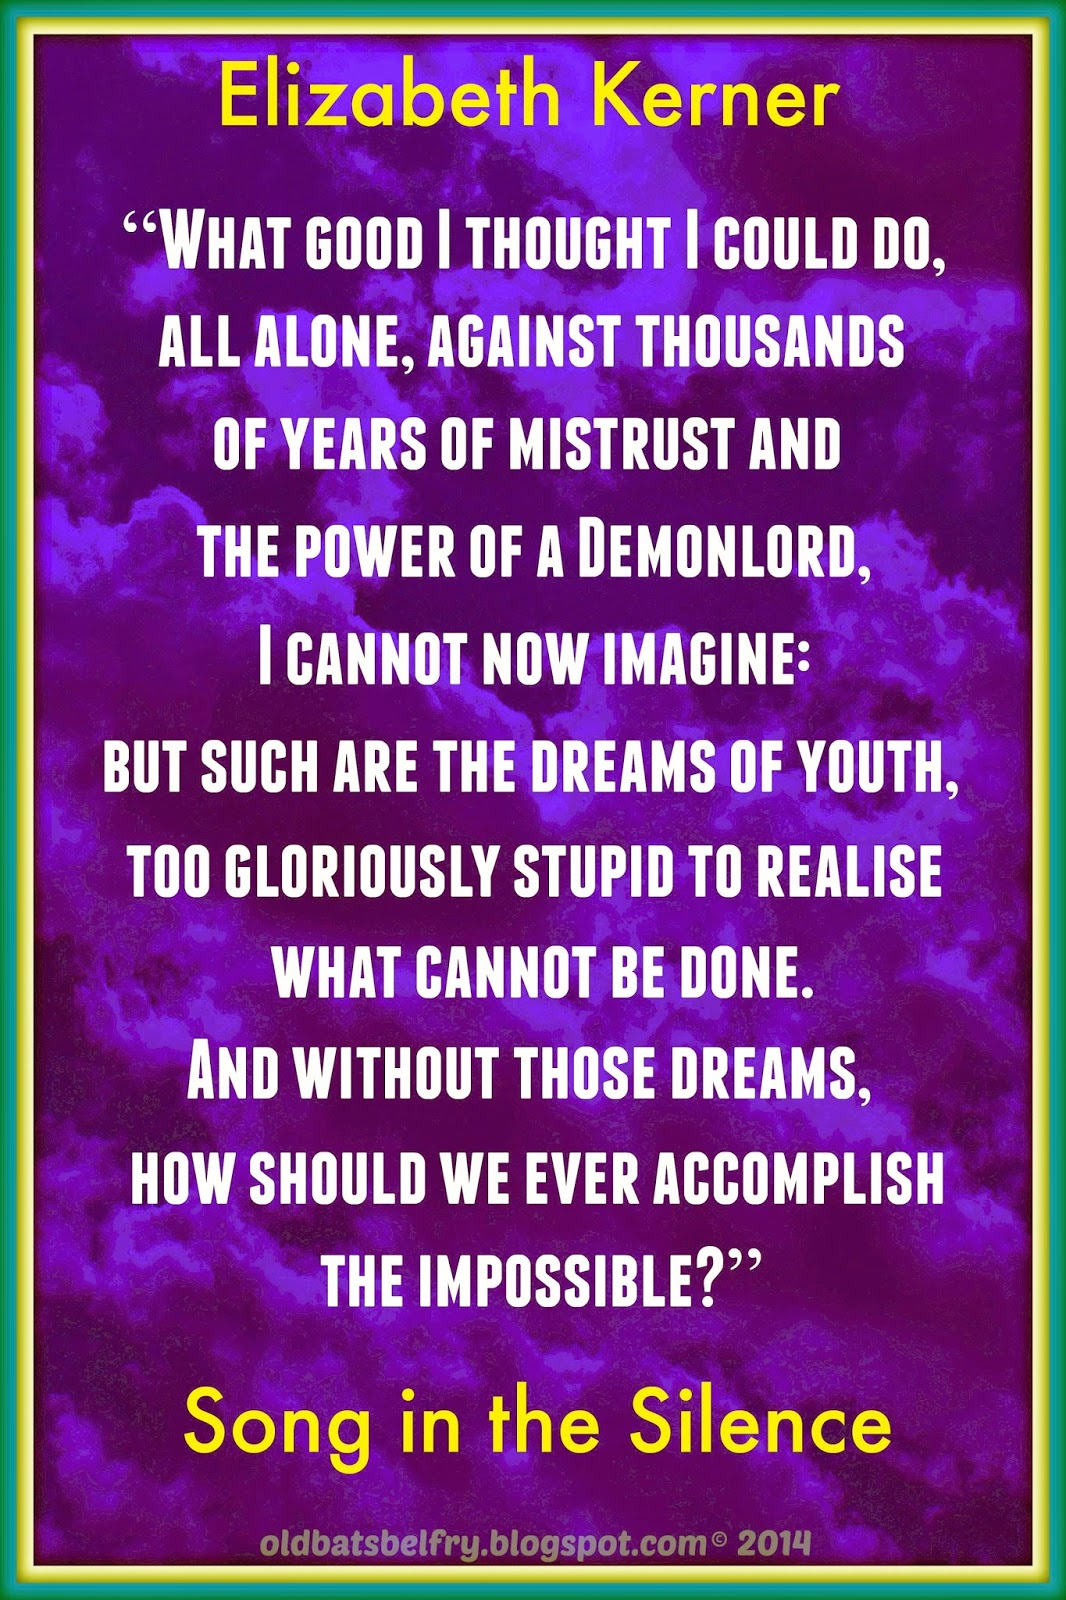 Quote about the dreams of youth by Elizabeth Kerner on a background design by Mulluane